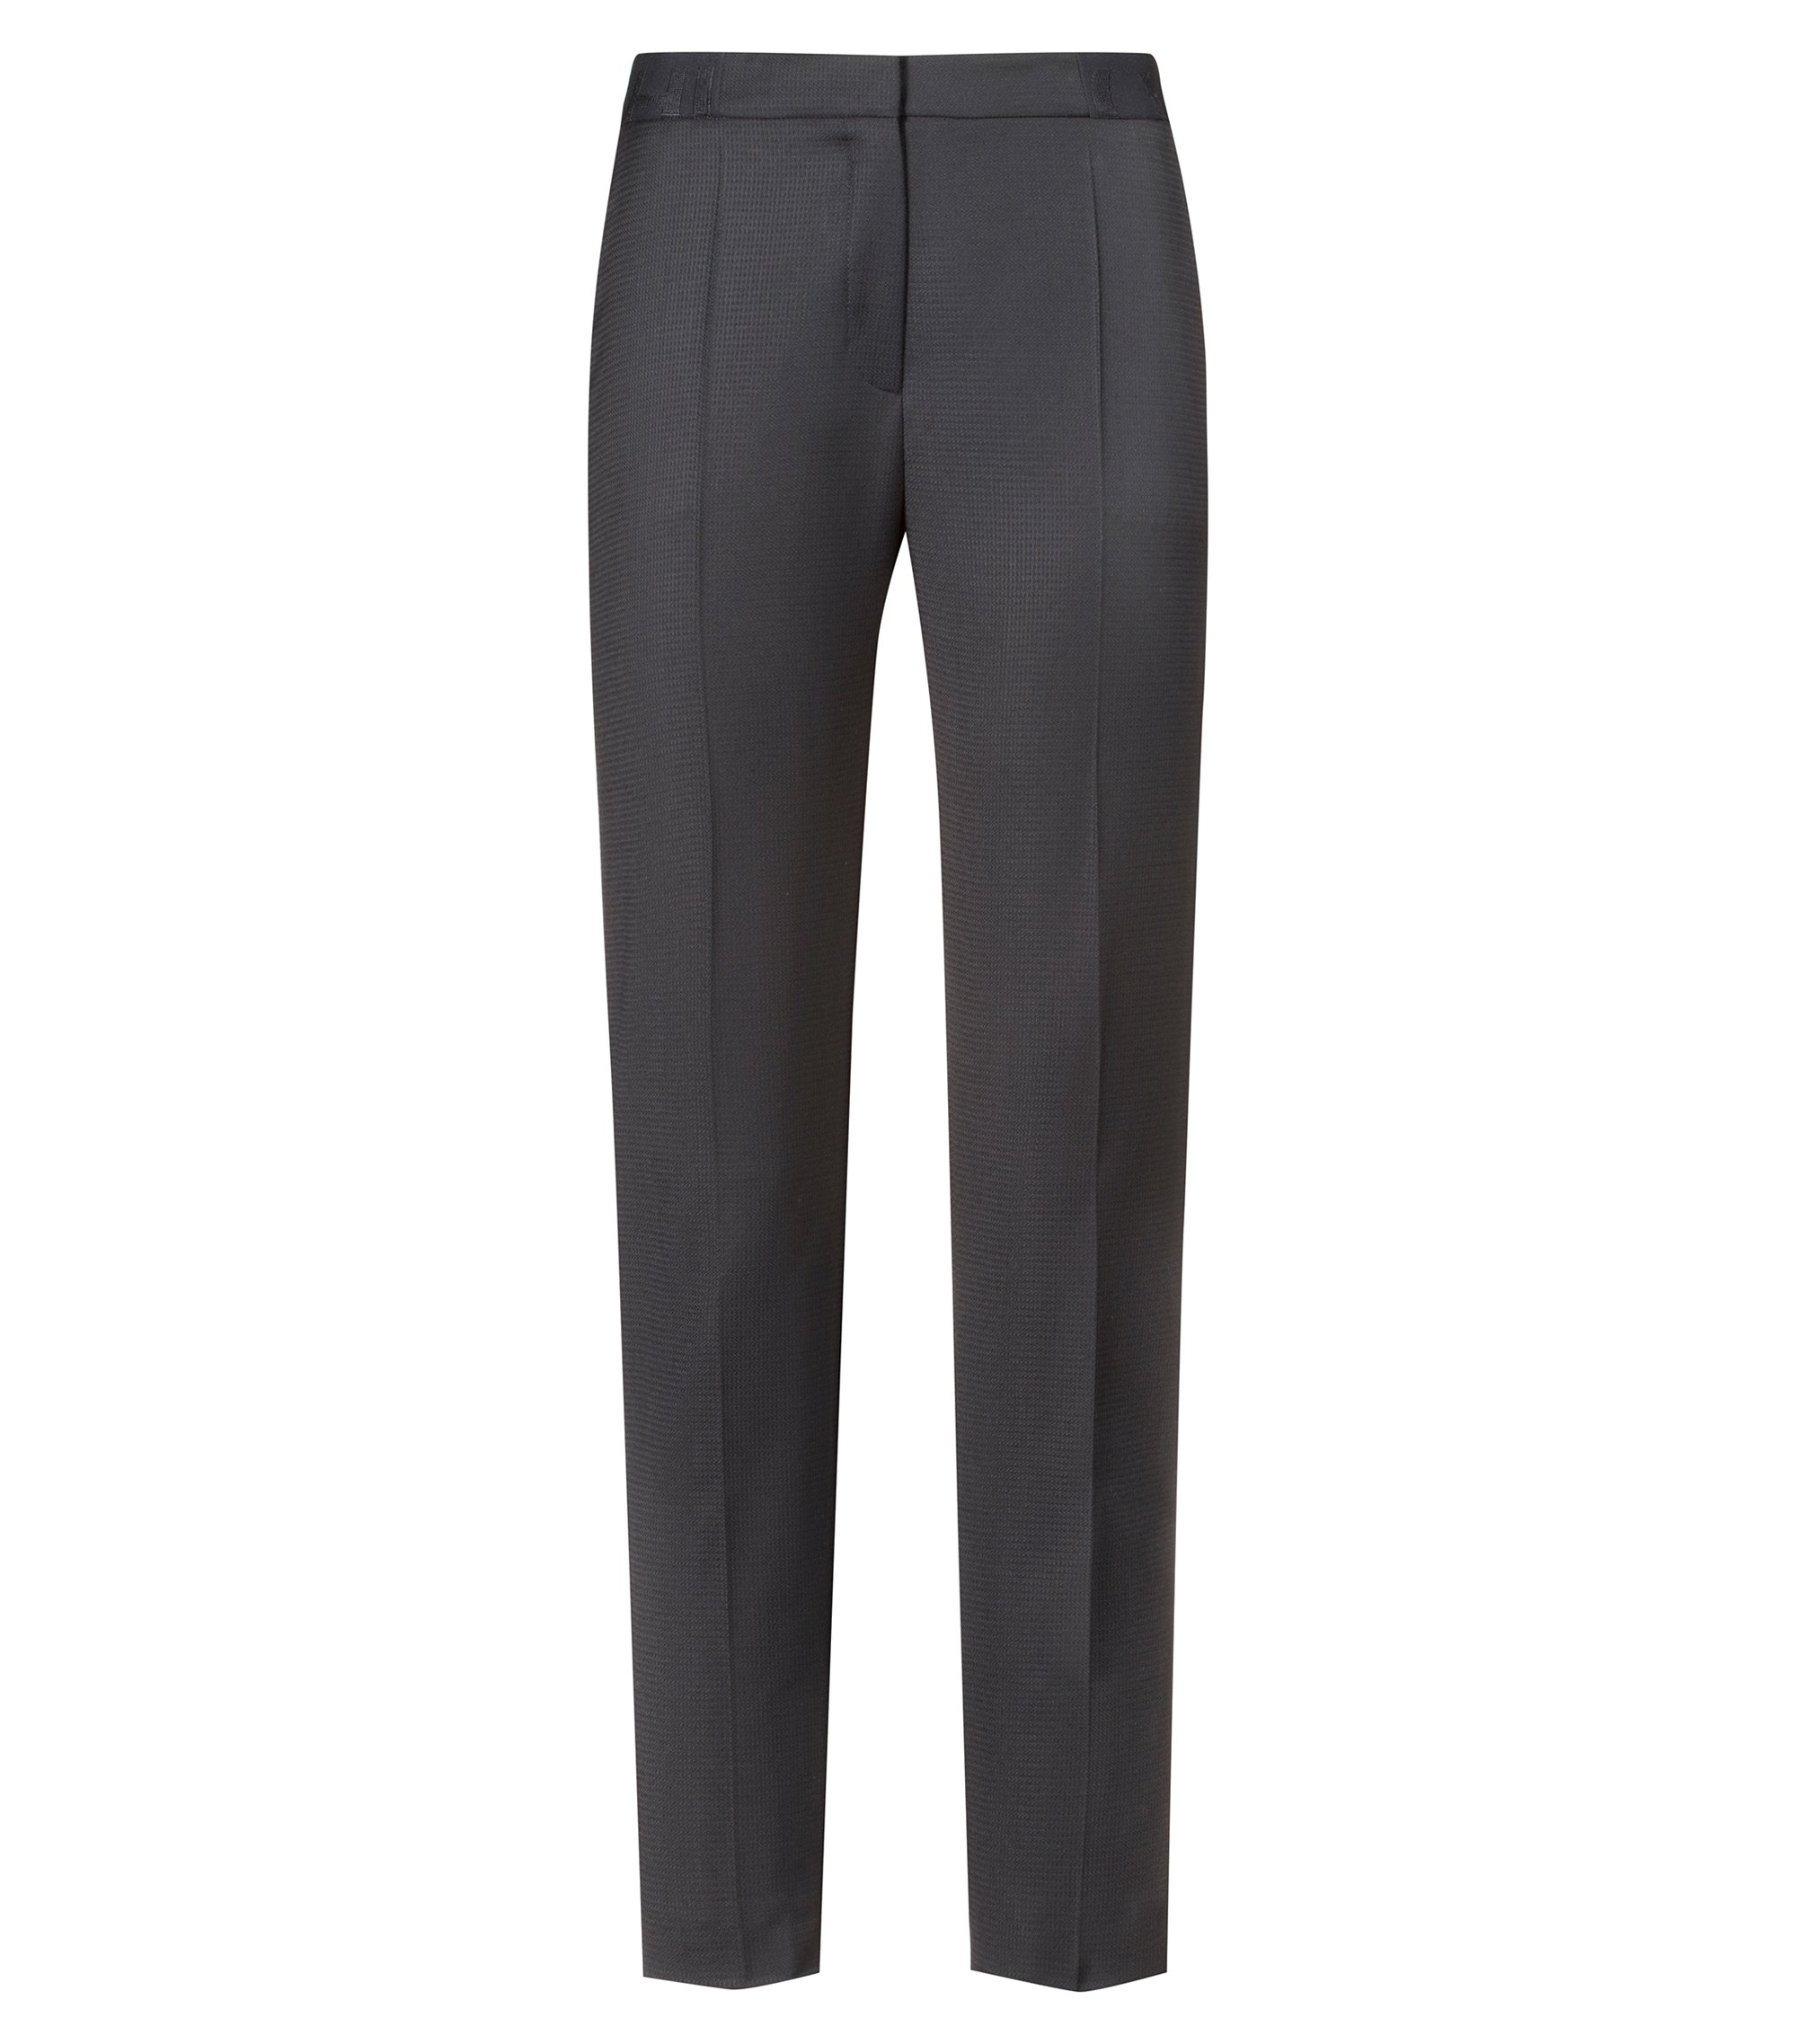 Regular-fit cigarette trousers with logo-ribbon waistband, Patterned